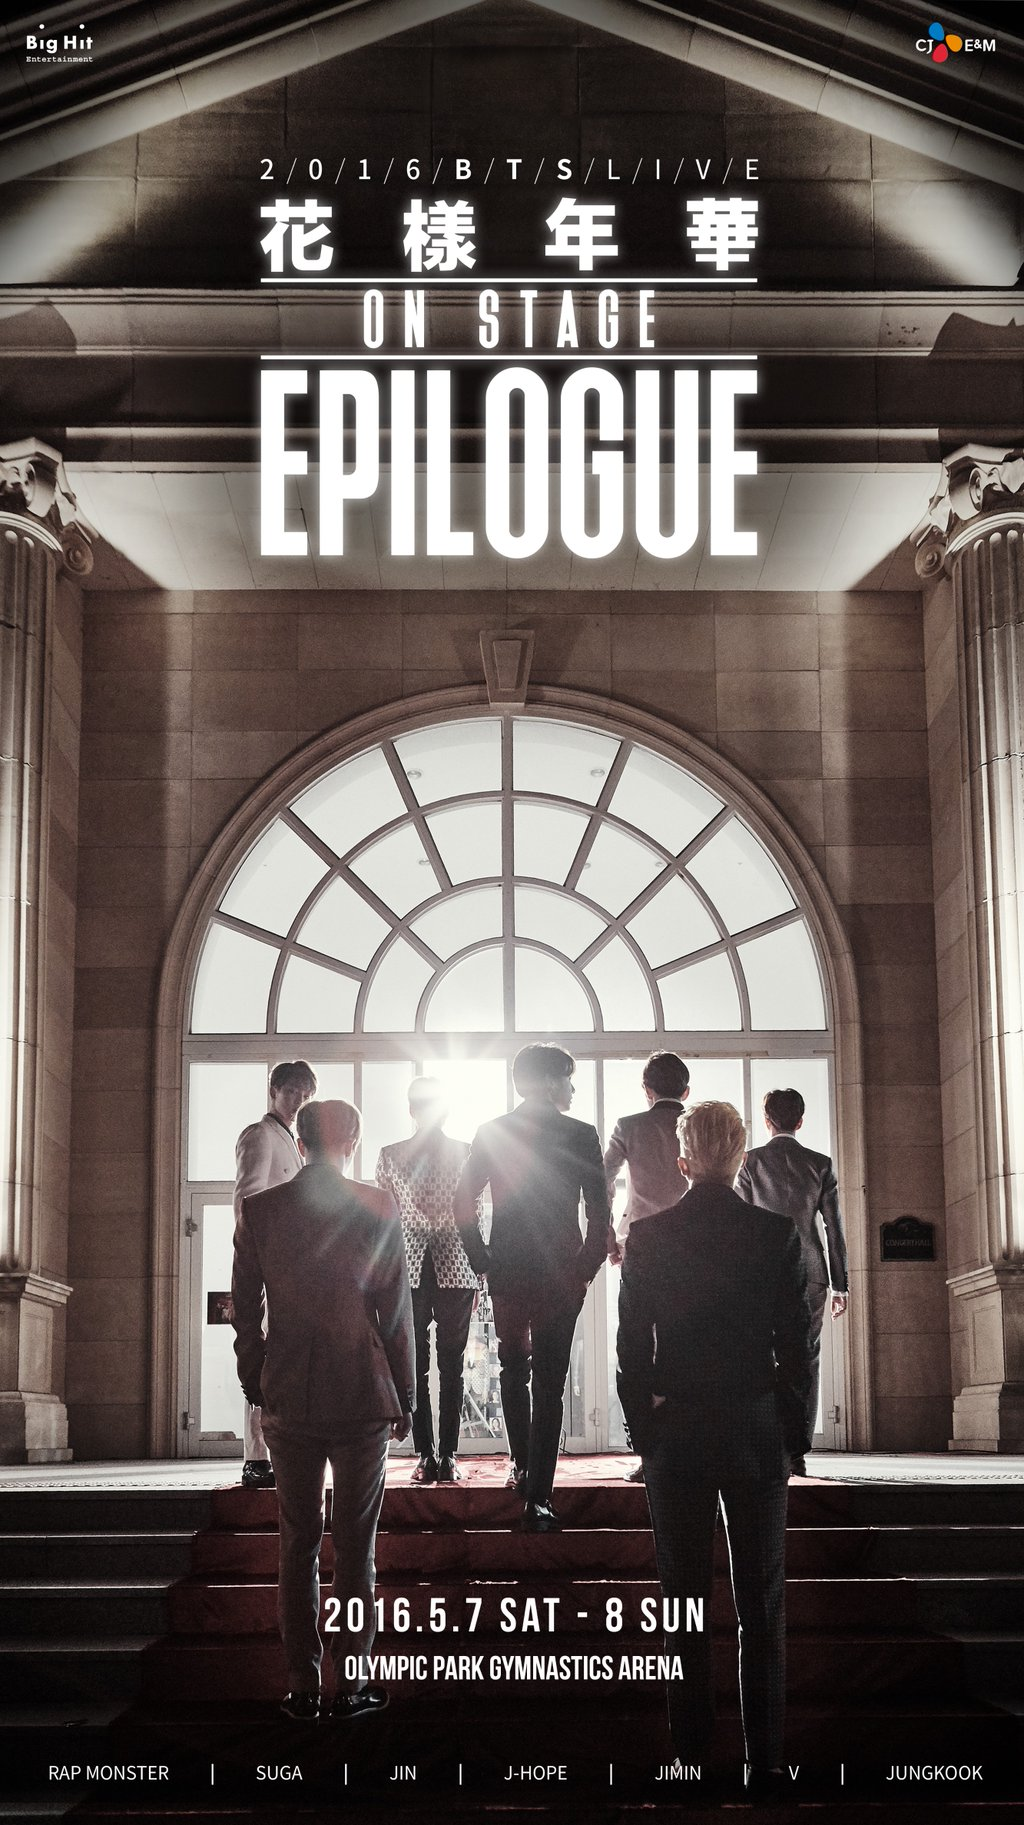 BTS's Epilogue Concert Results in Ticketing Frenzy